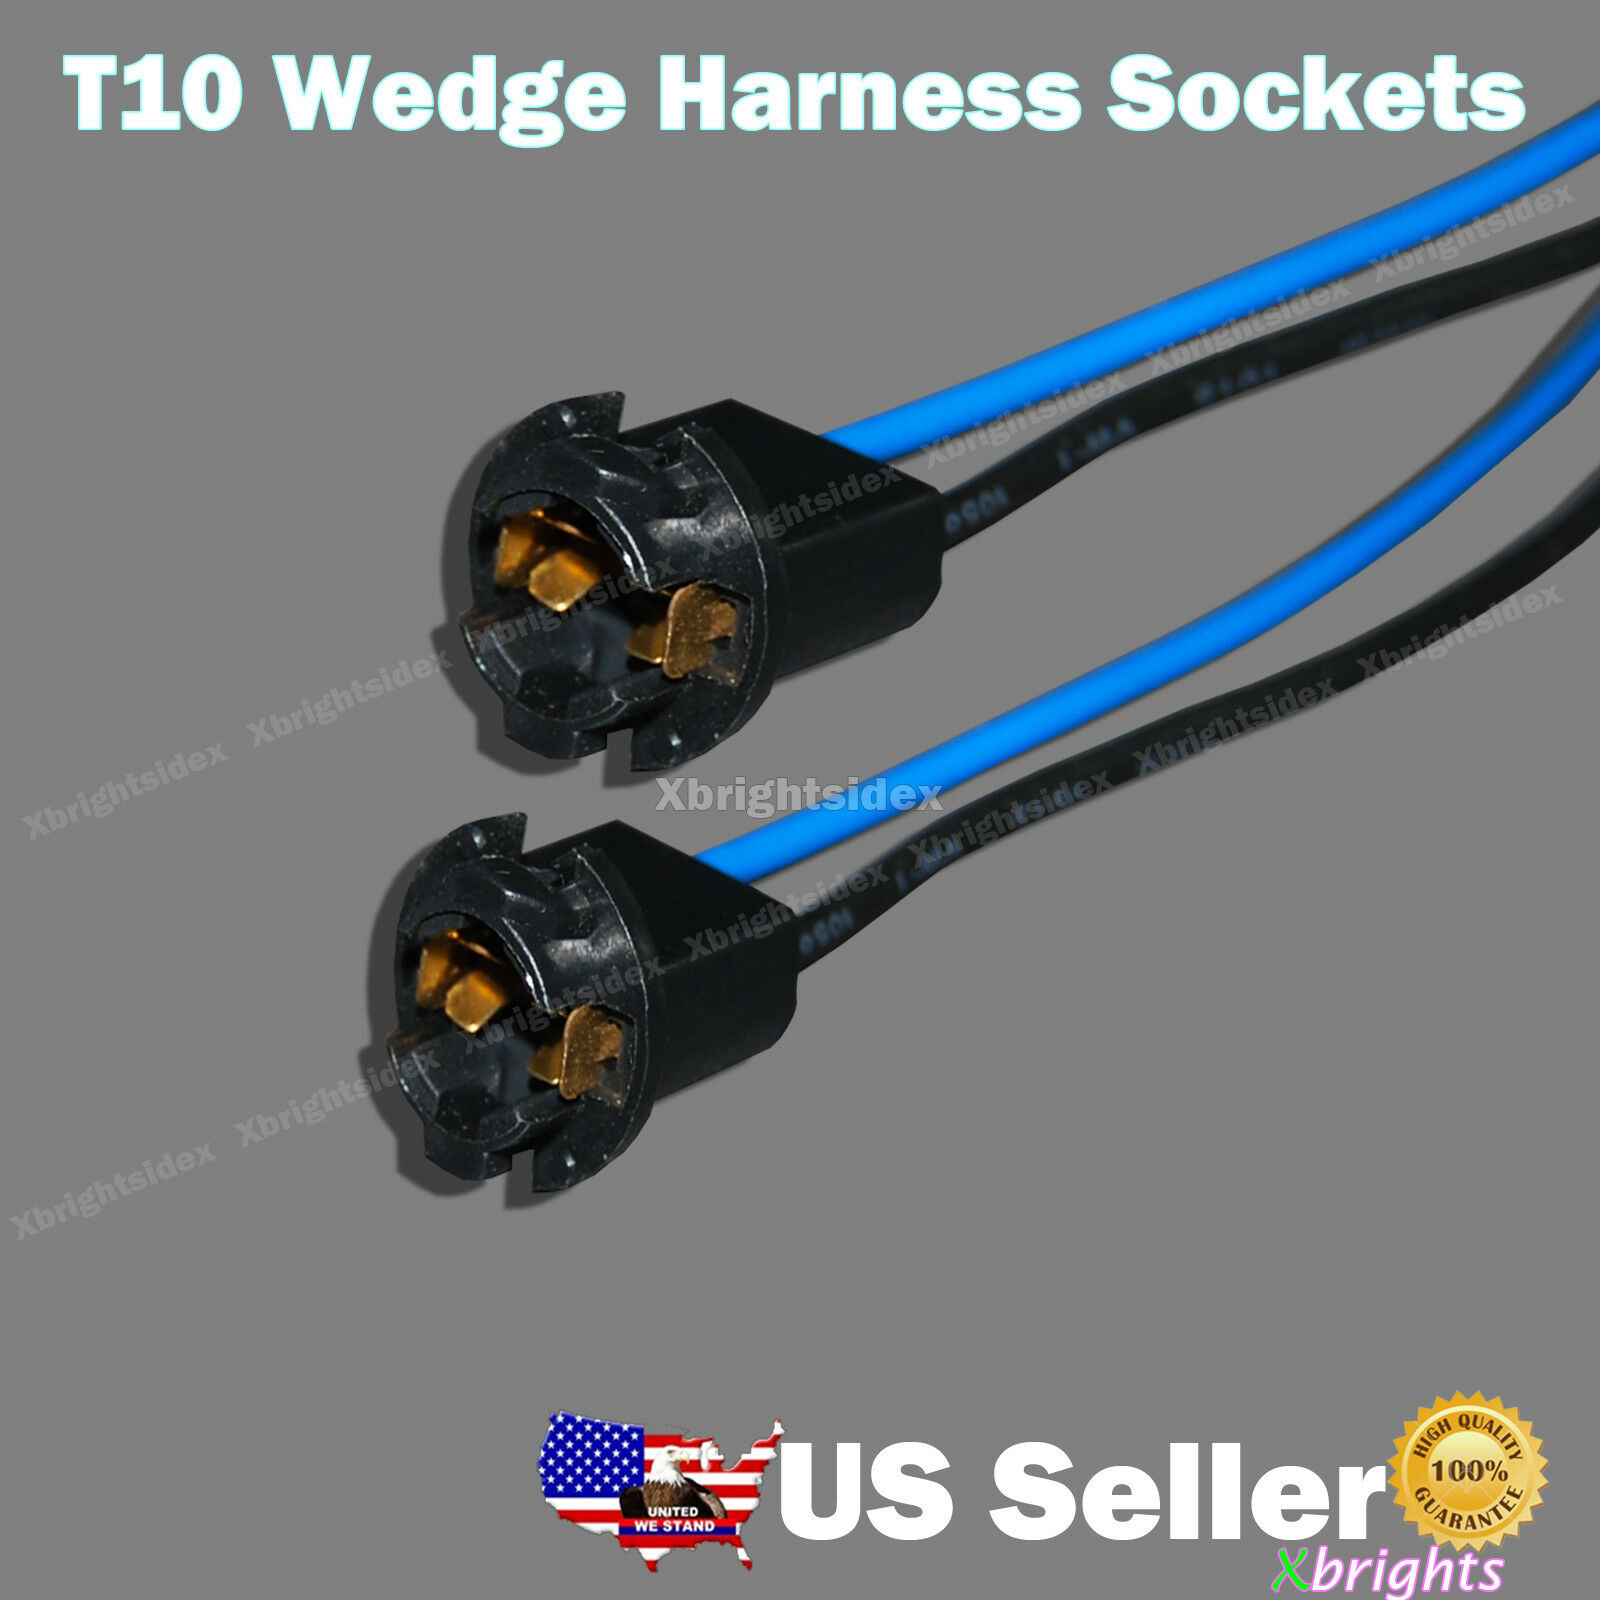 2pcs T10 Wedge Light Instrument Bulb Extension Connector Wiring 194 Led Harness Sockets 1 Of 6free Shipping See More